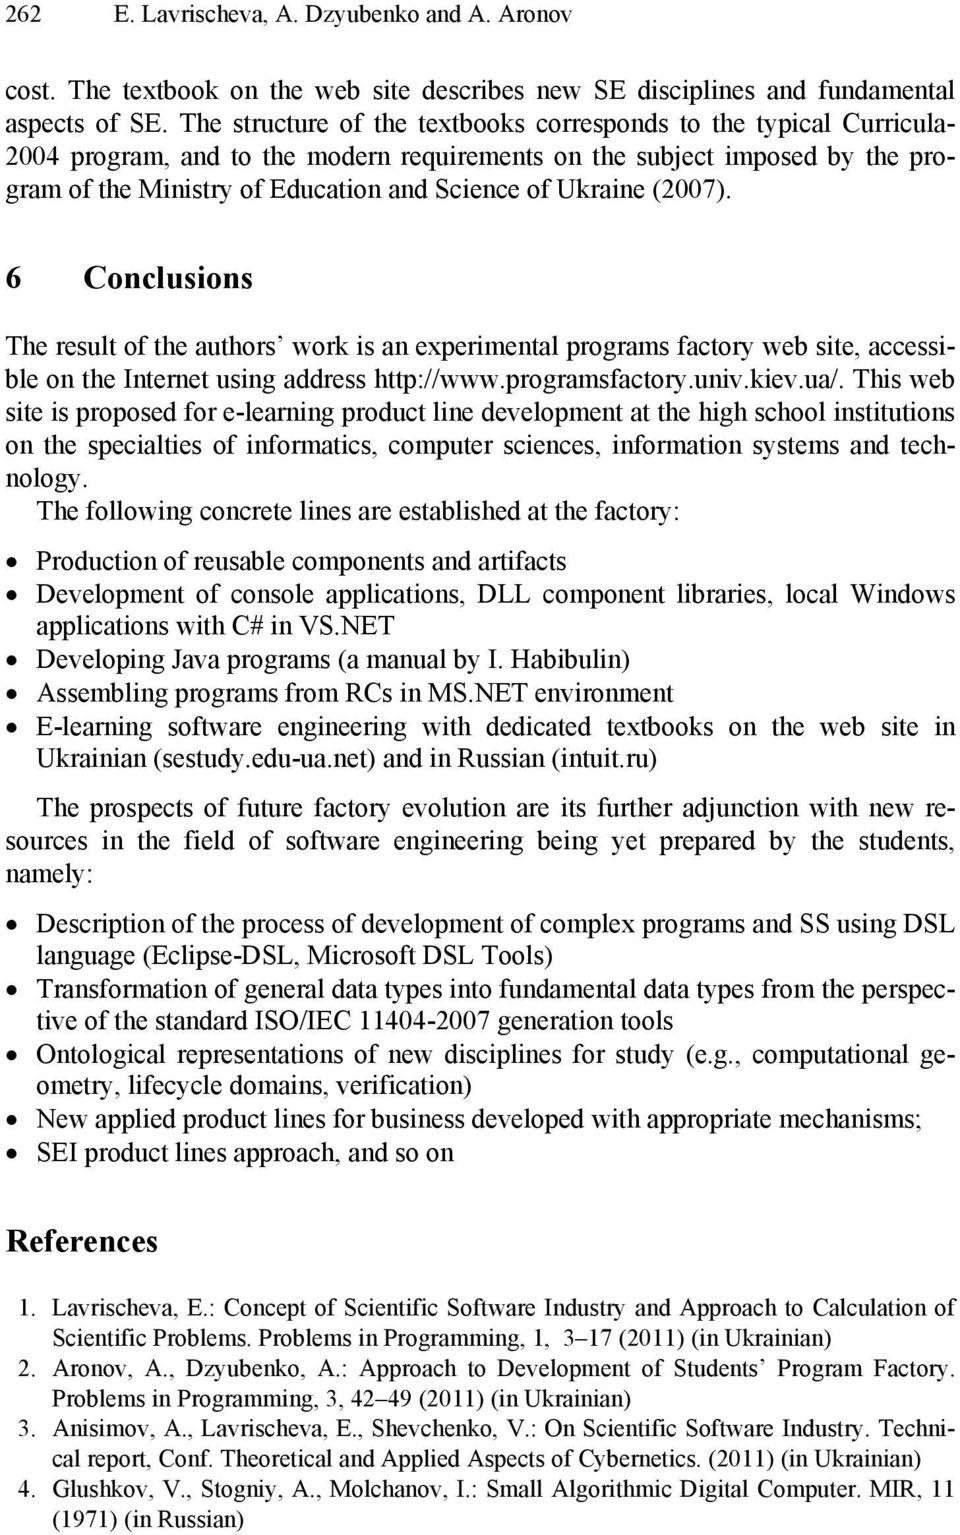 Ukraine (2007). 6 Conclusions The result of the authors work is an experimental programs factory web site, accessible on the Internet using address http://www.programsfactory.univ.kiev.ua/.